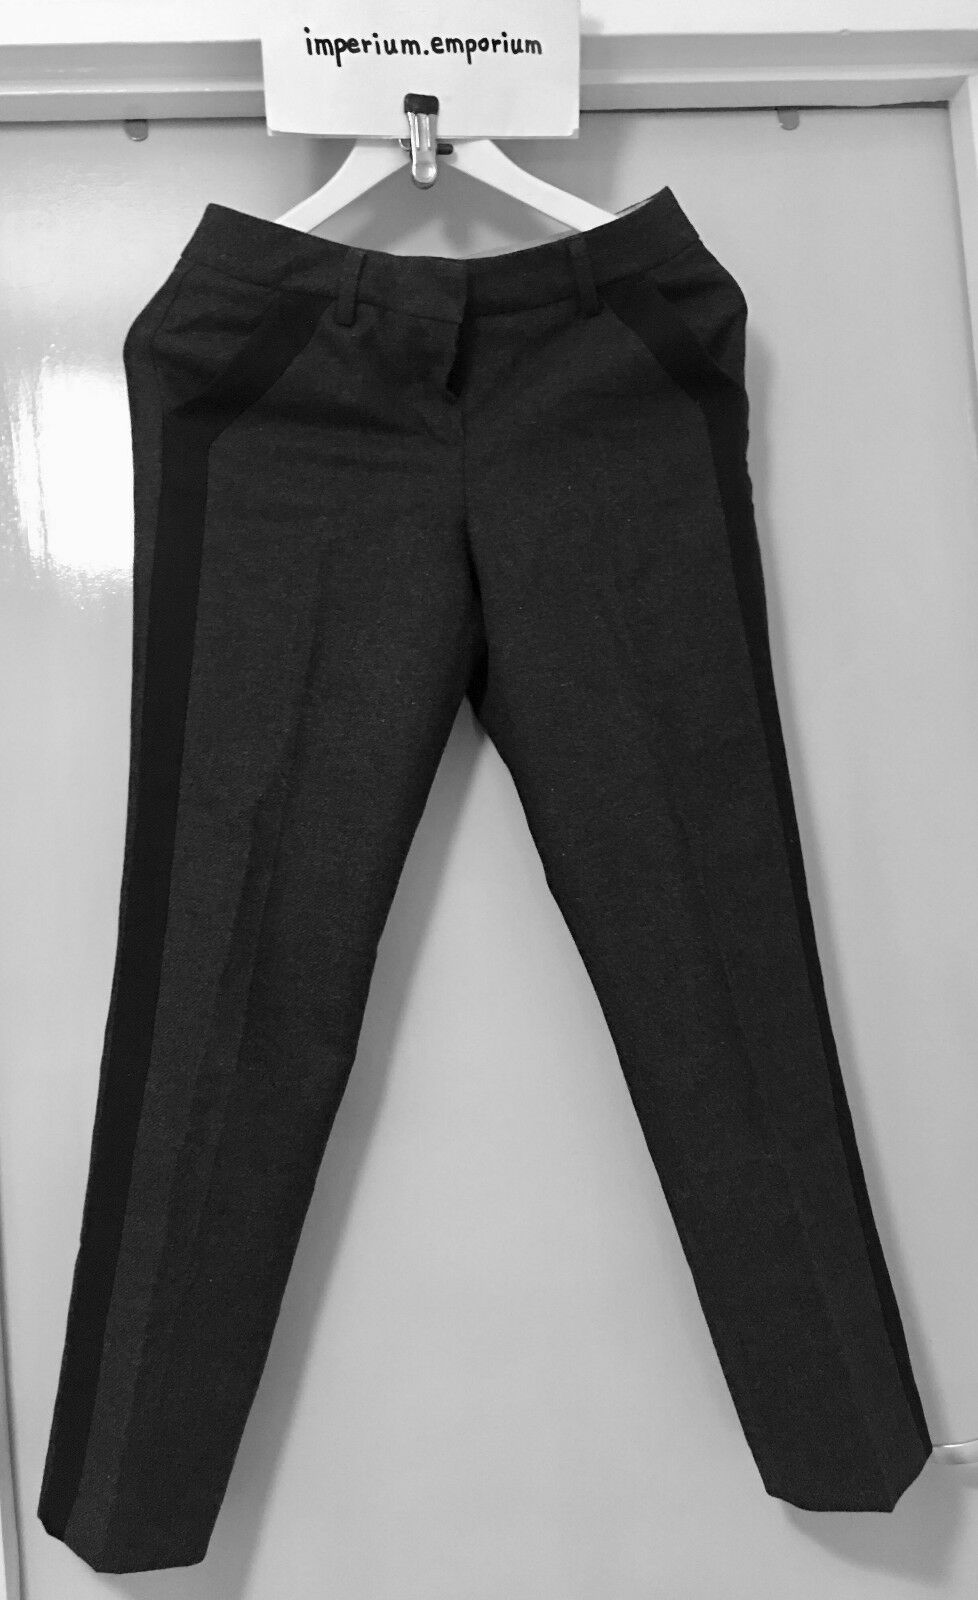 Women's Kookai Insulated Straight Trousers Inches Pants Grey/Black Size 25 Inches Trousers 7d977e